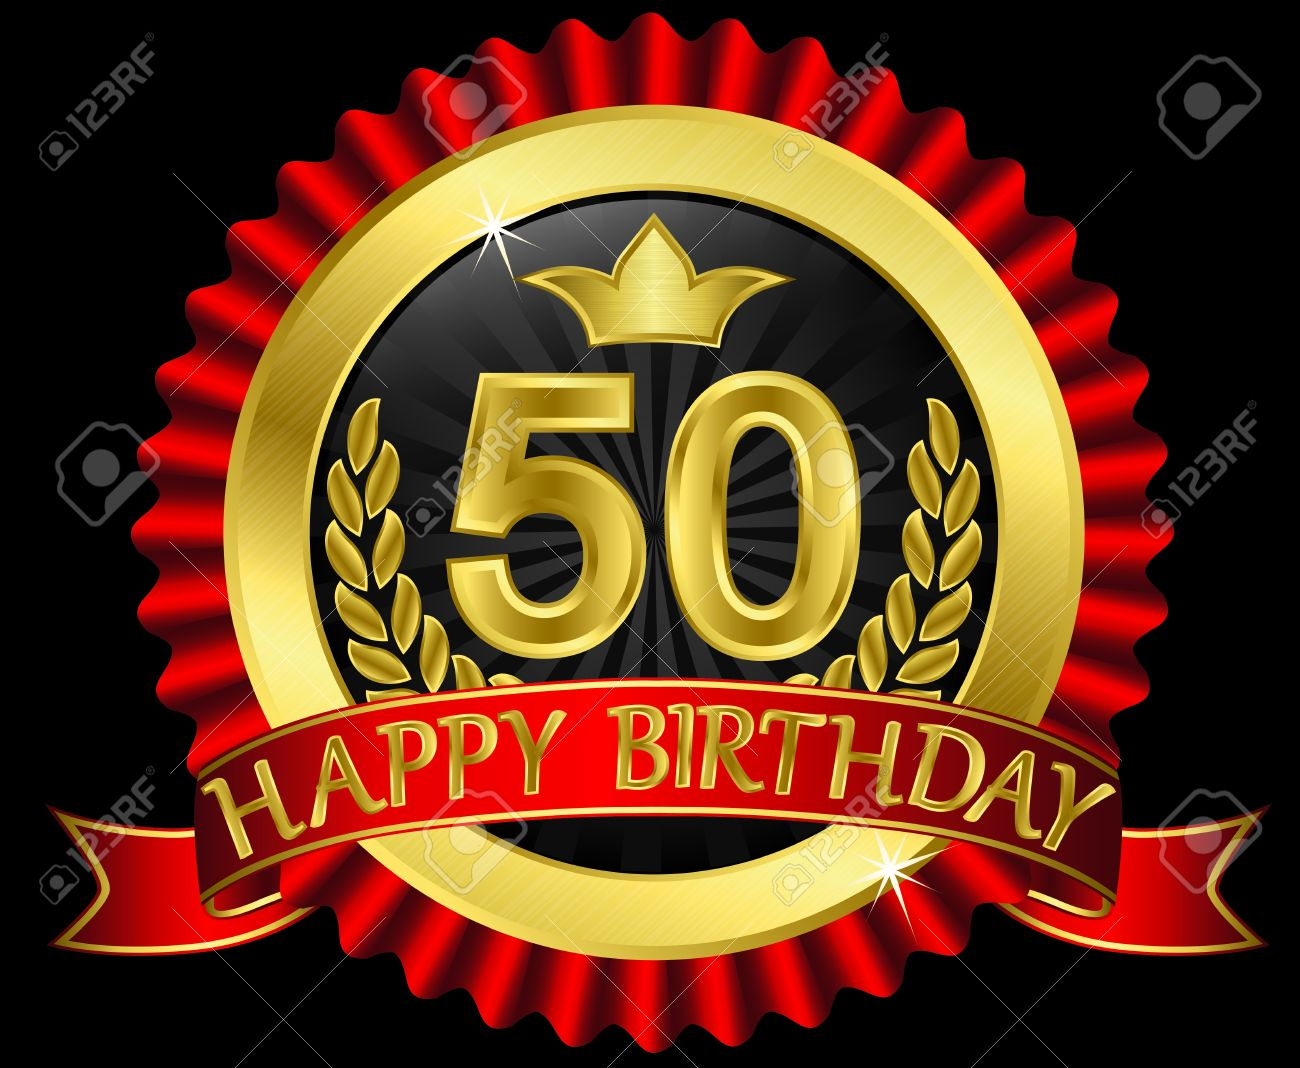 50 years happy birthday golden label with ribbons Stock Vector - 14713830